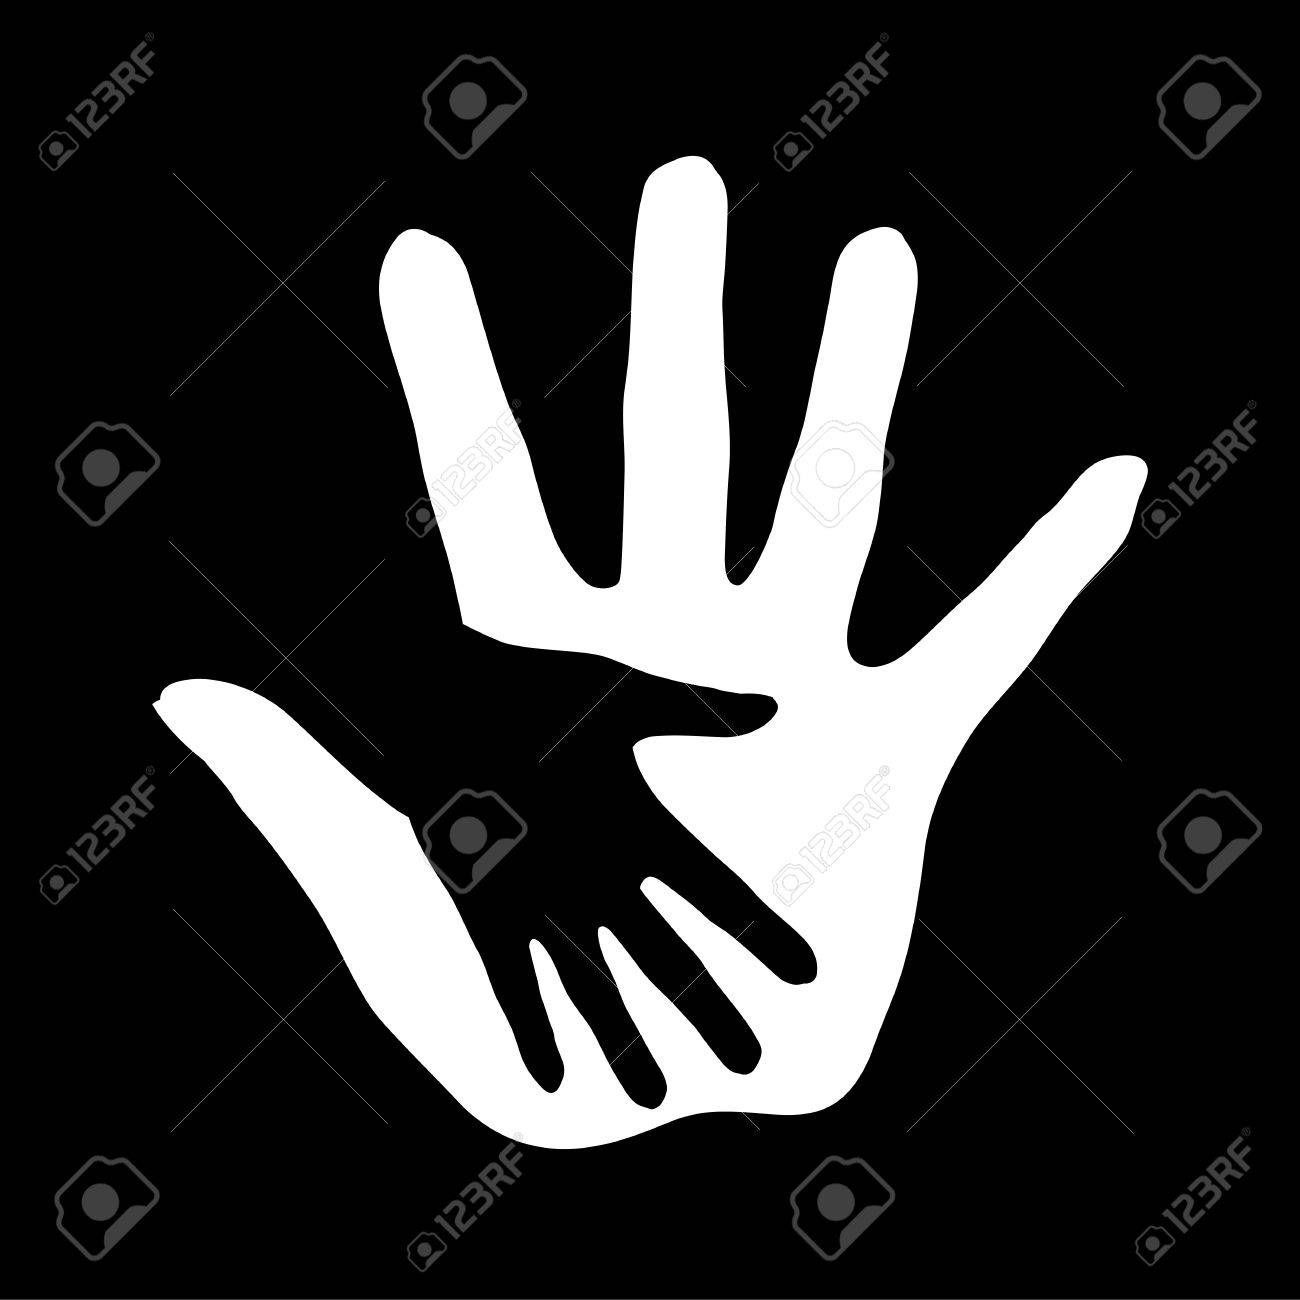 Black-and-white hand in hand illustration as concept of help, assistance and cooperation. Stock Vector - 22630078